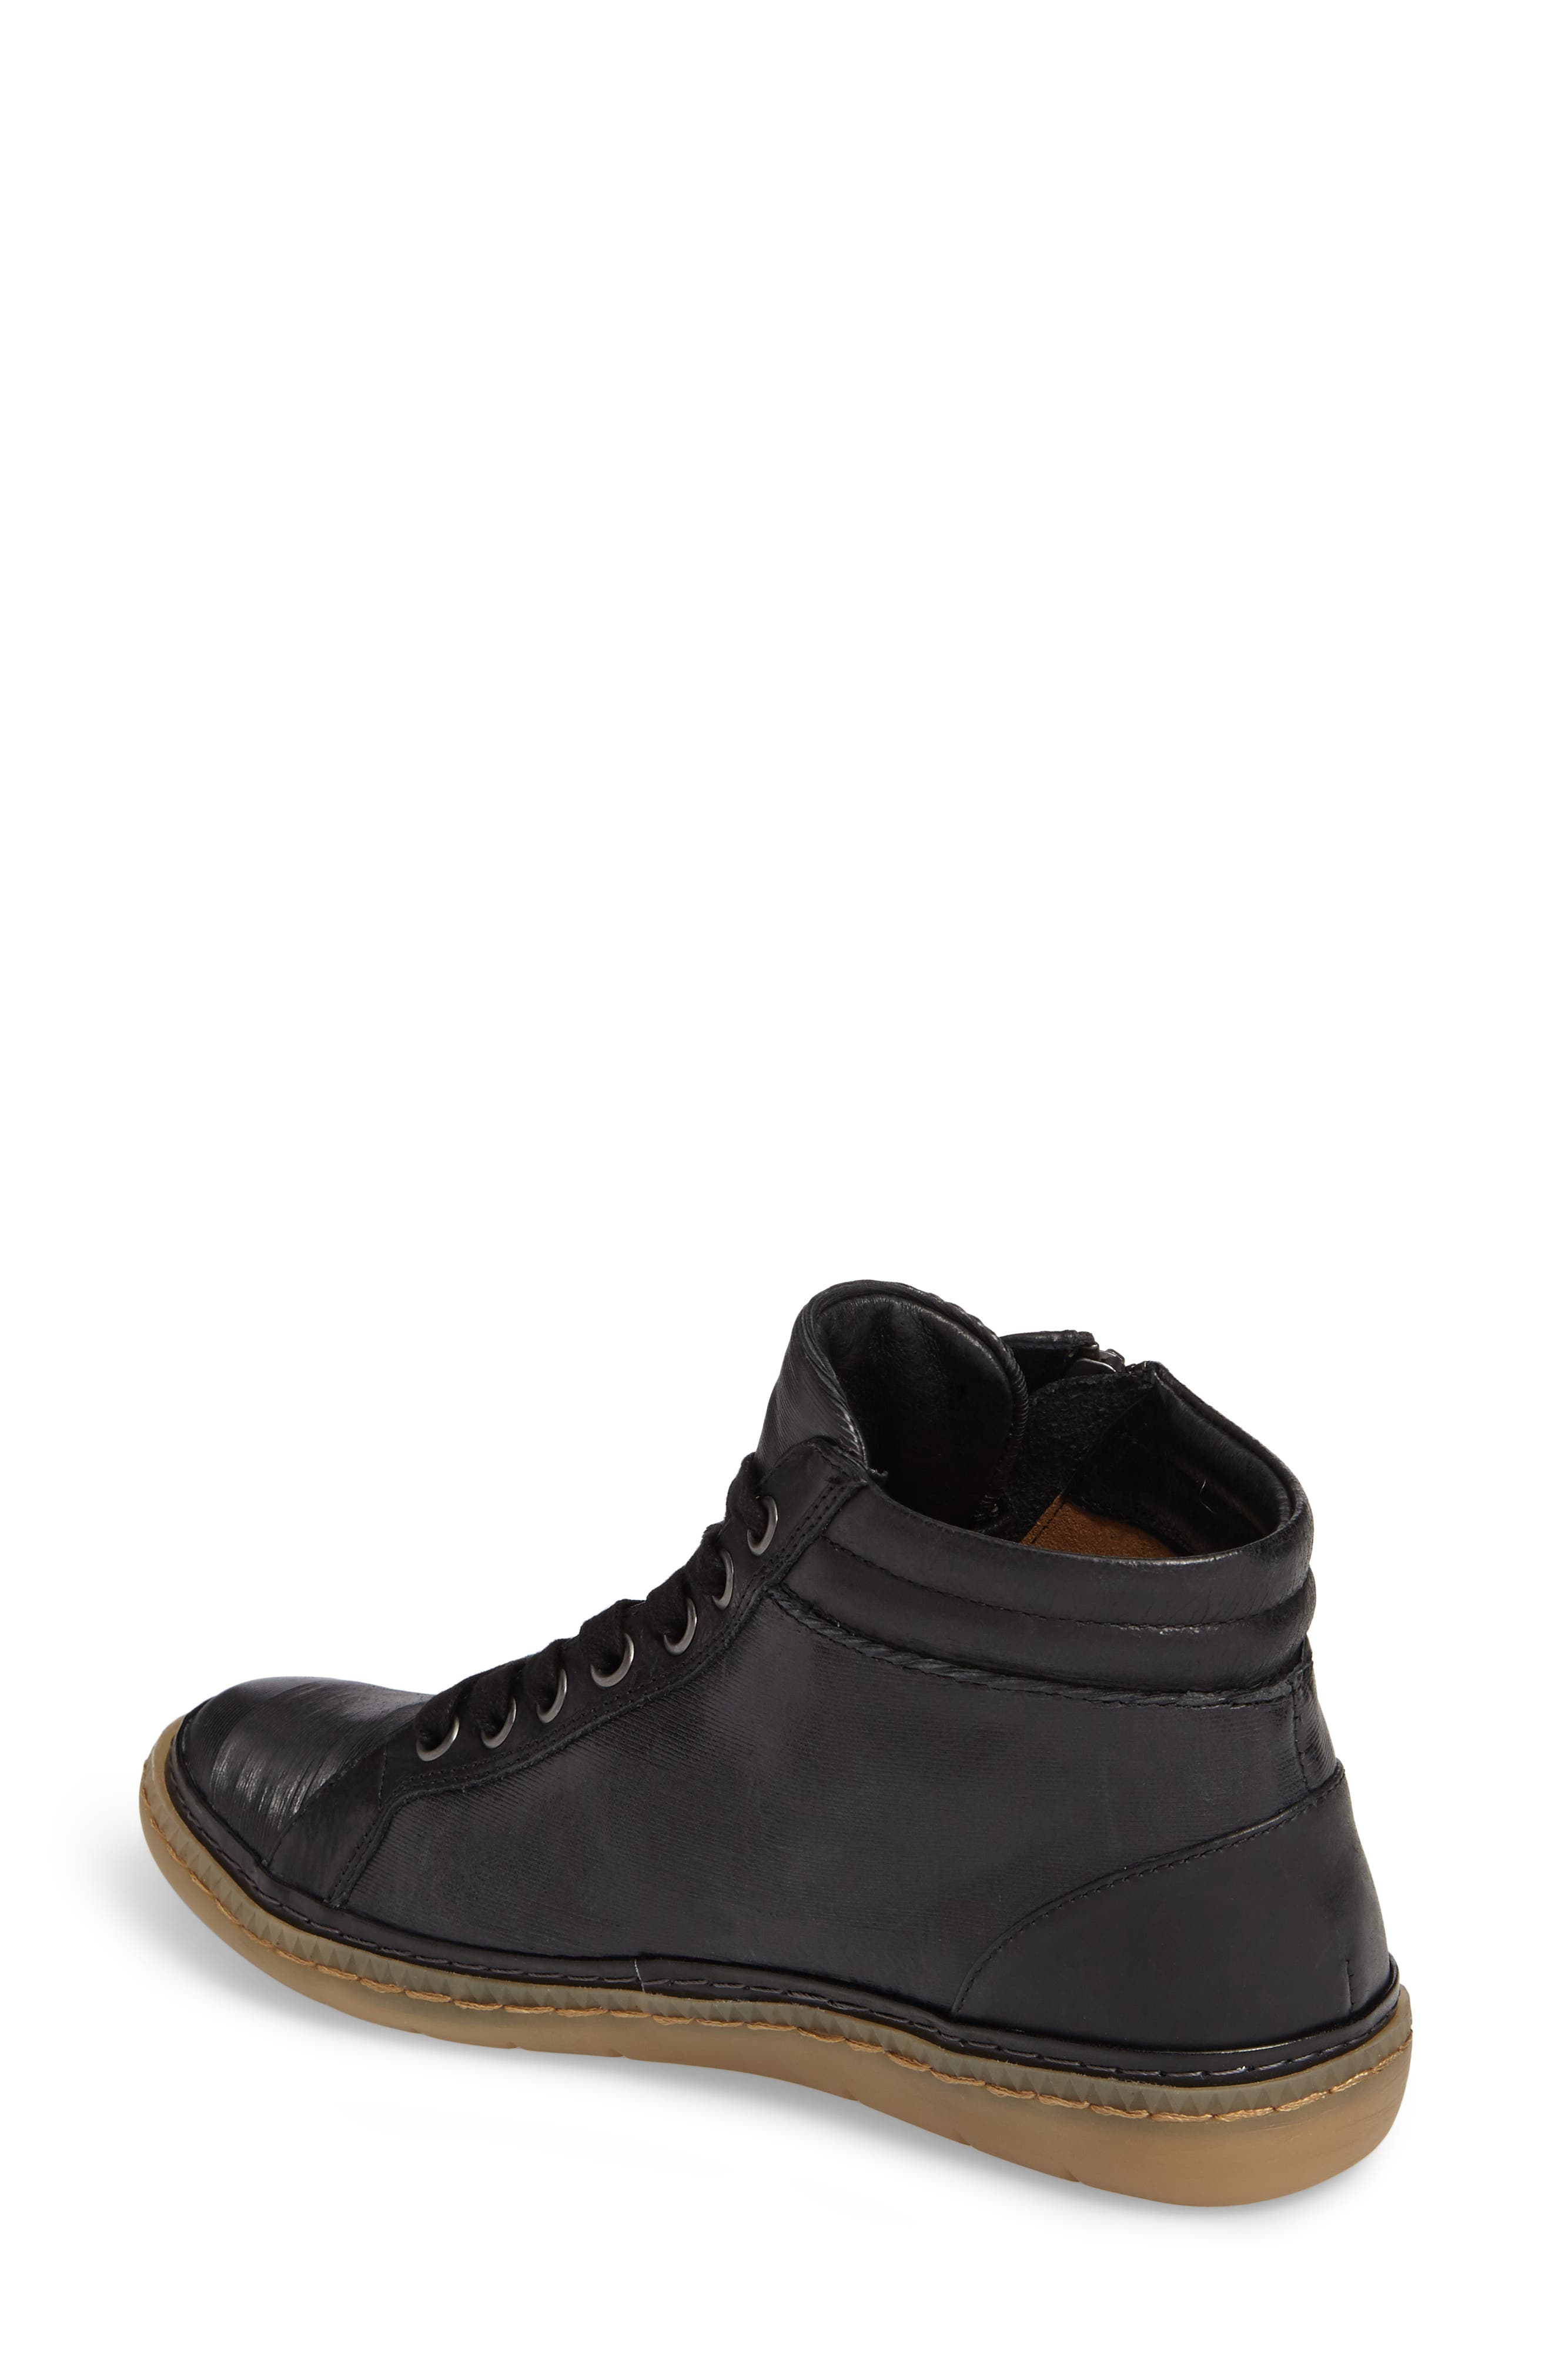 Annaleigh High Top Sneaker,                             Alternate thumbnail 2, color,                             BLACK LEATHER